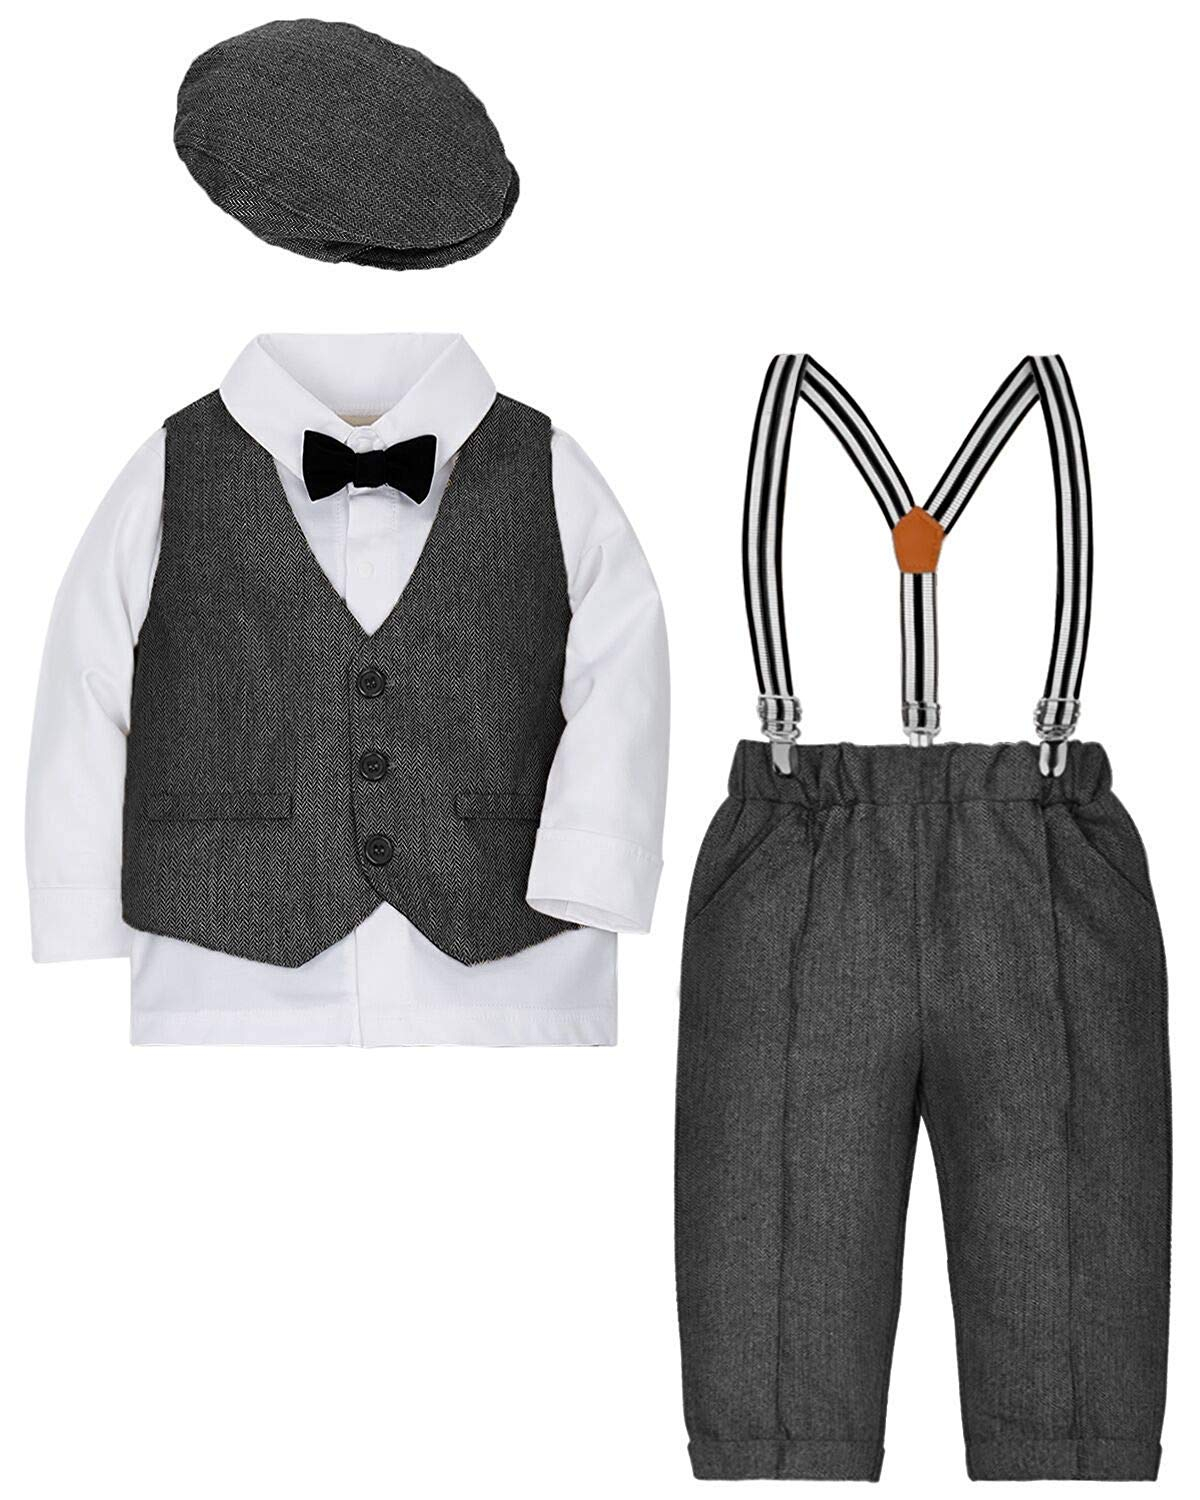 ZOEREA Baby Boy Suit Outfits Set,3pcs Long Sleeves Gentleman Romper Jumpsuit & Vest Coat & Berets Hat with Bow Tie (Grey, Label 110/Age 30-42Months) by ZOEREA